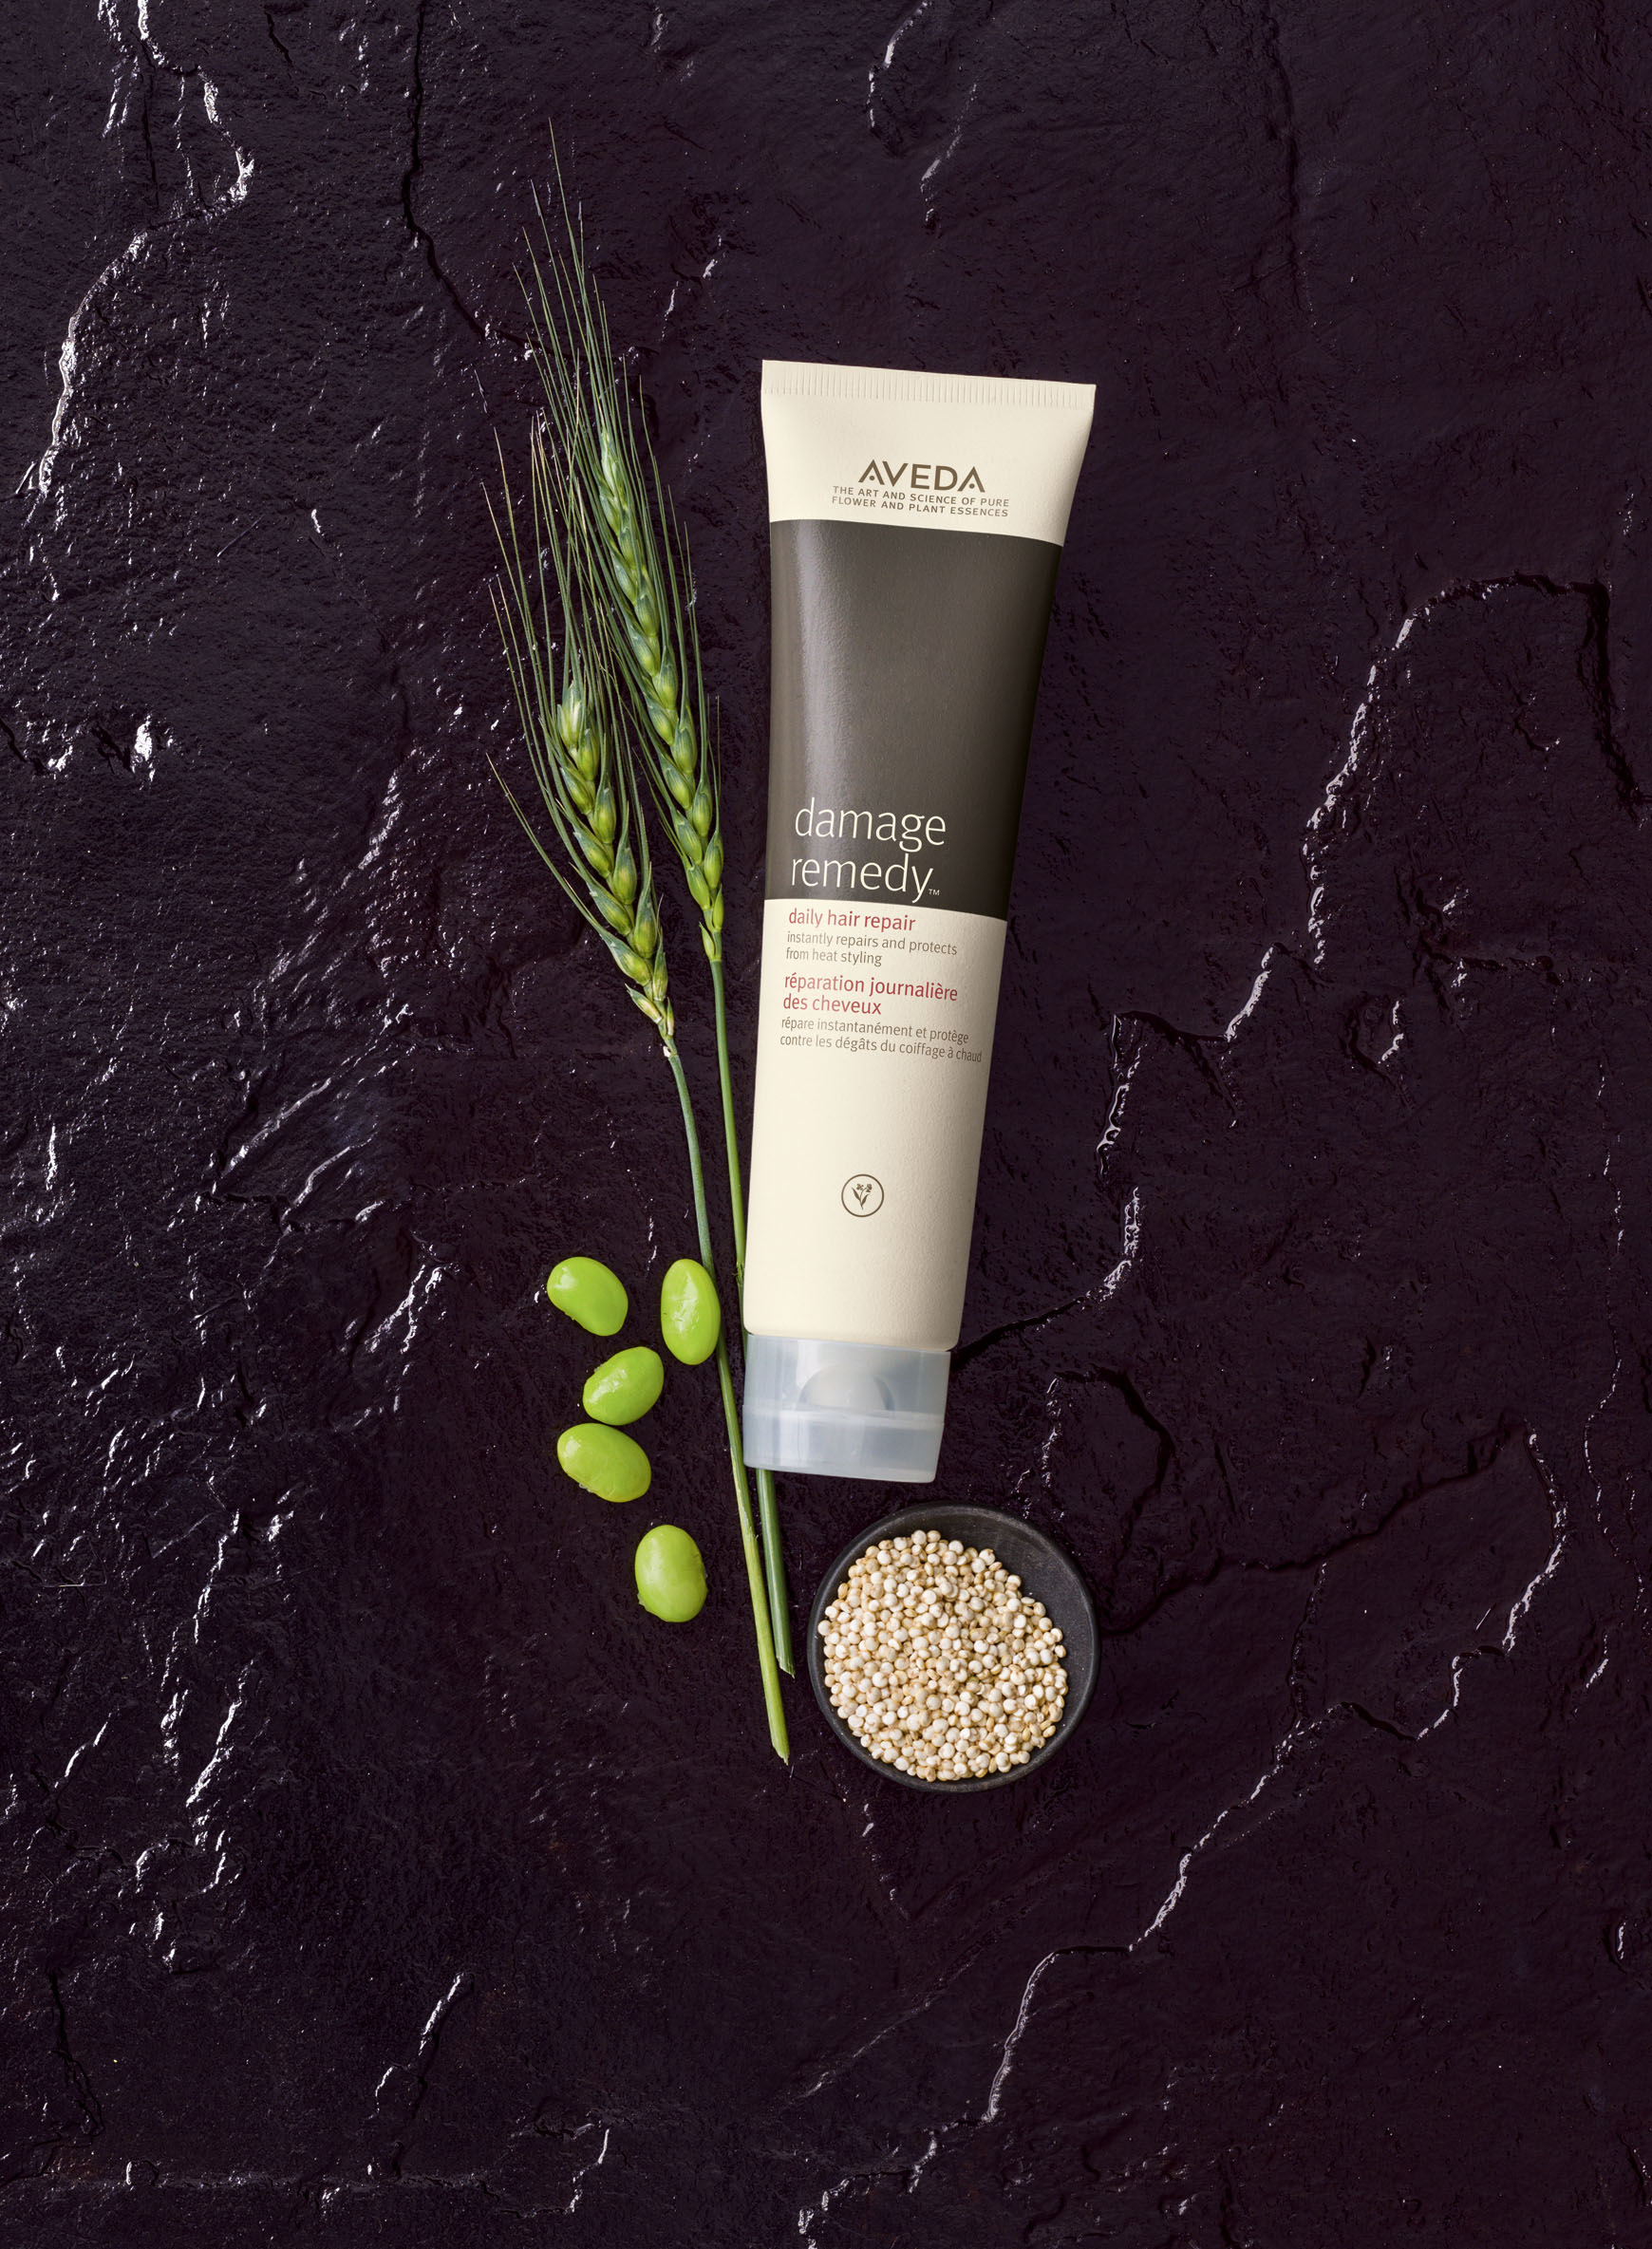 The quinoa protein in Damage Remedy products nurtures hair and restores its health.